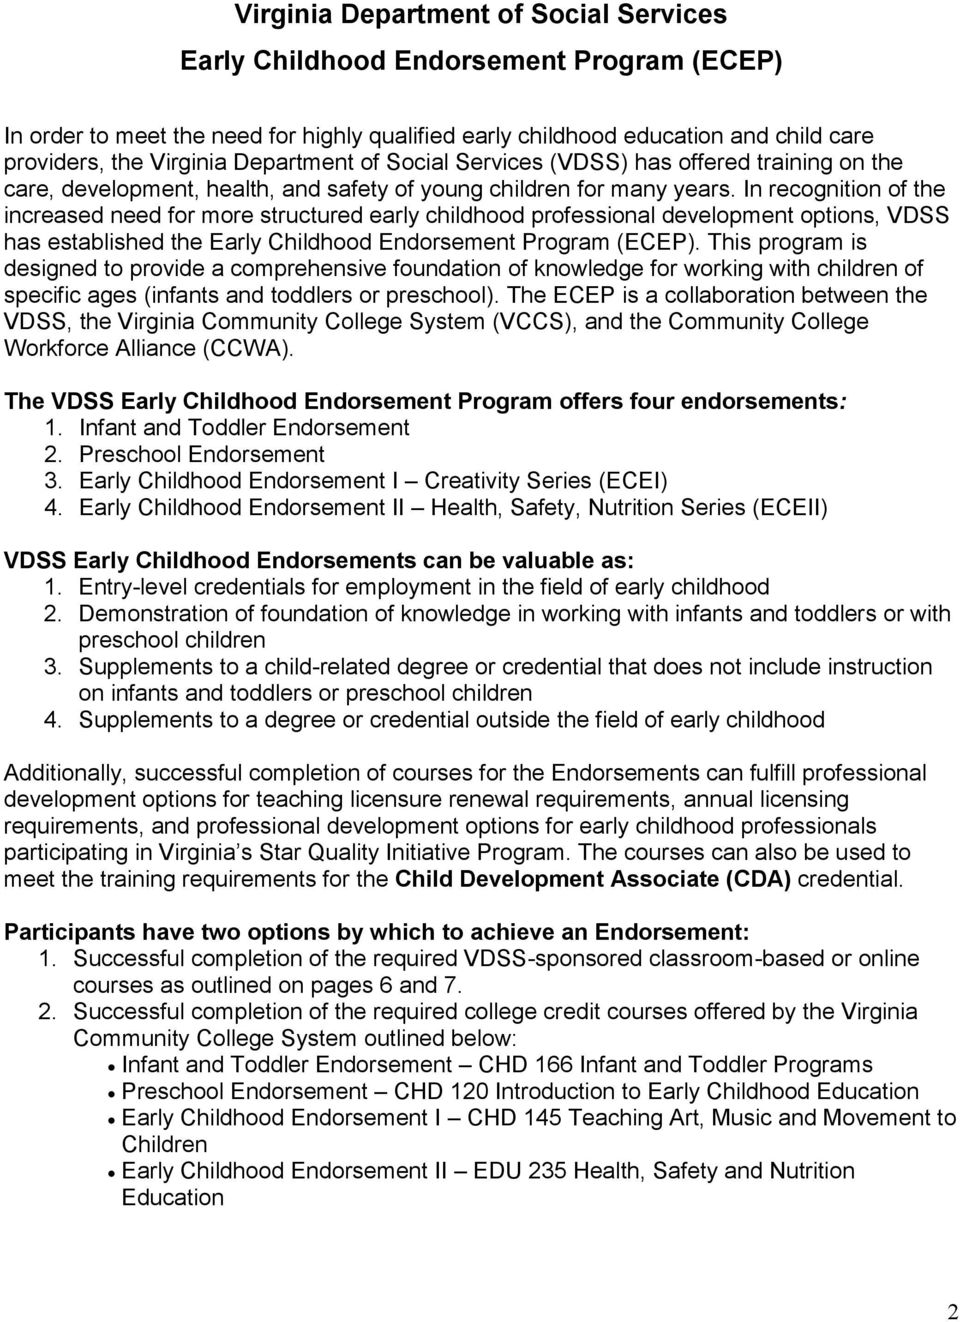 In recognition of the increased need for more structured early childhood professional development options, VDSS has established the Early Childhood Endorsement Program (ECEP).